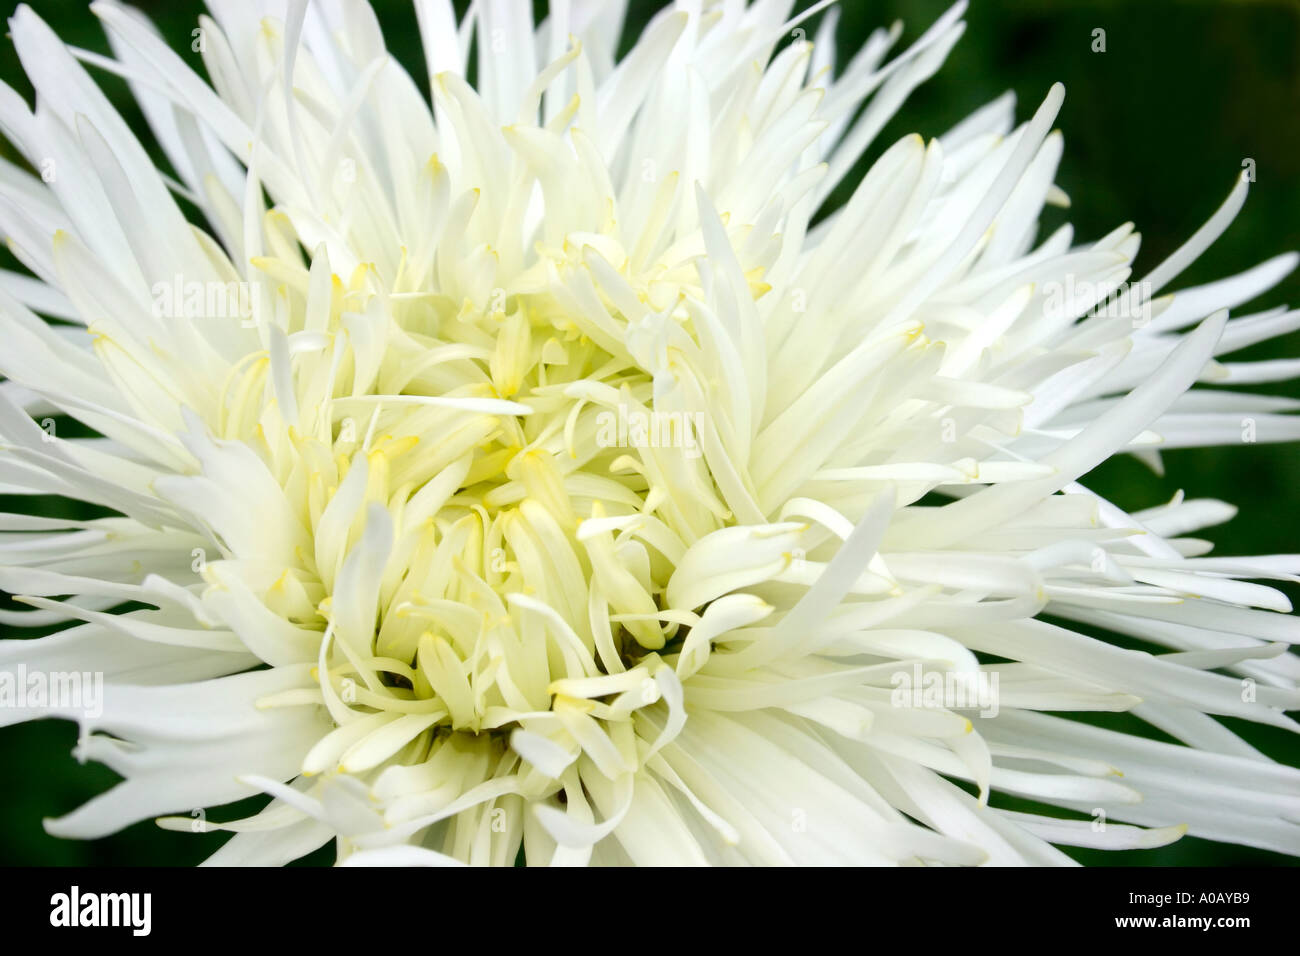 White flower of garden plant leucanthemum x superbum shaggy common white flower of garden plant leucanthemum x superbum shaggy common name shasta daisy mightylinksfo